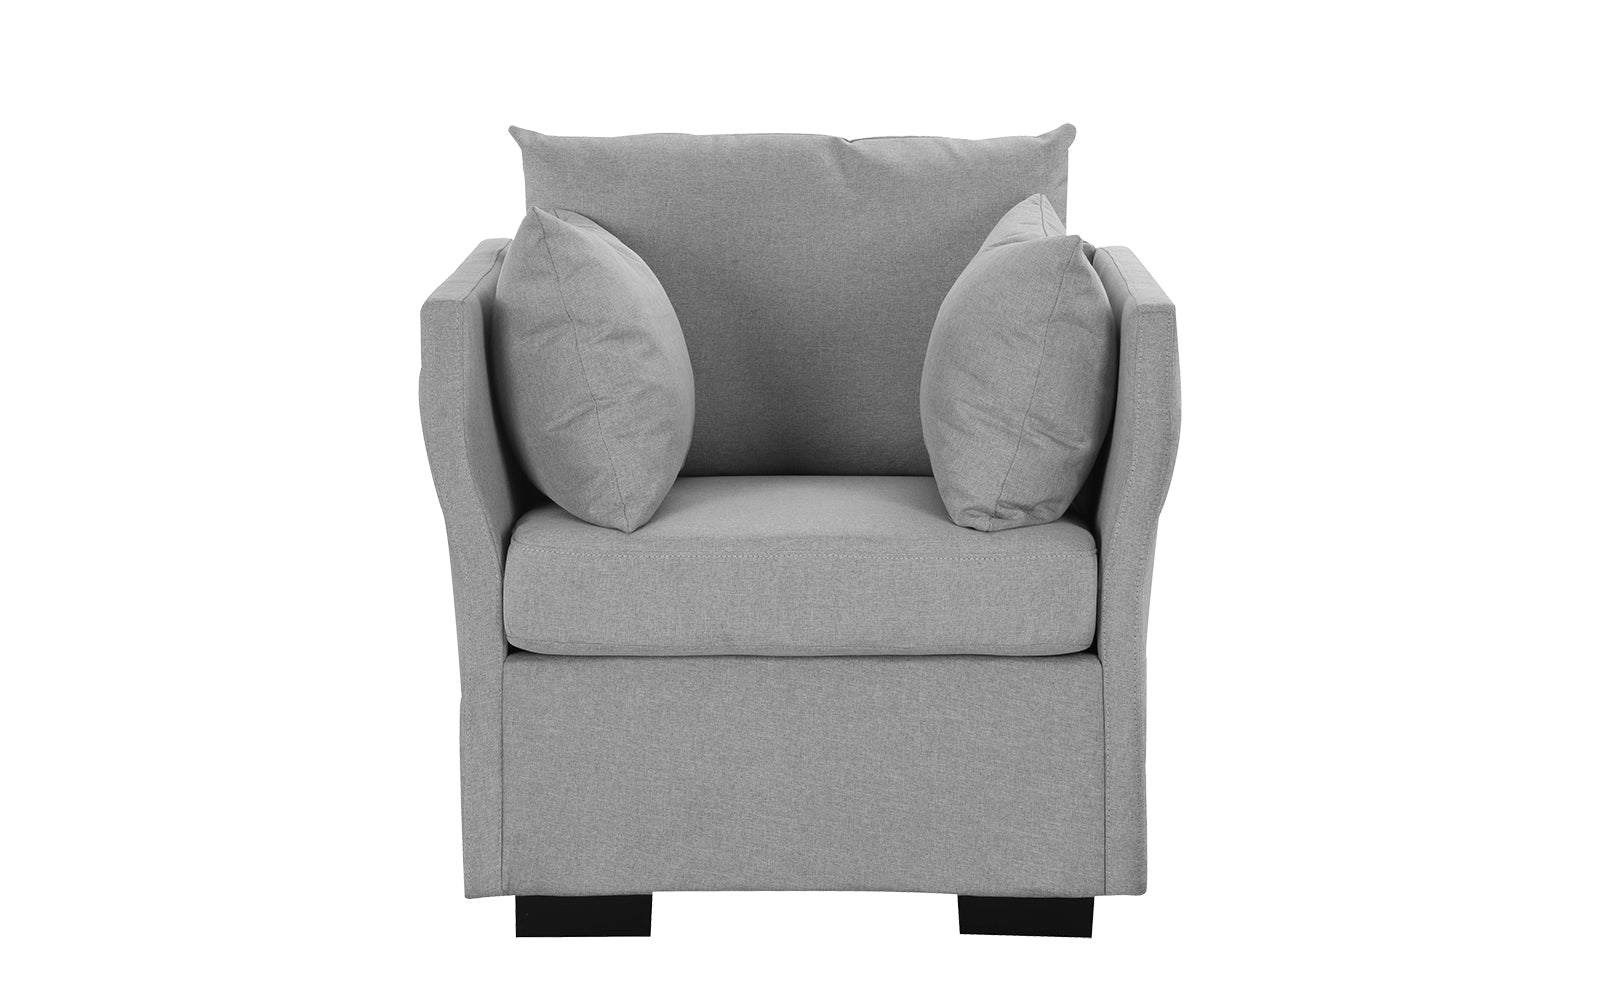 Linen Fabric Armchair Image